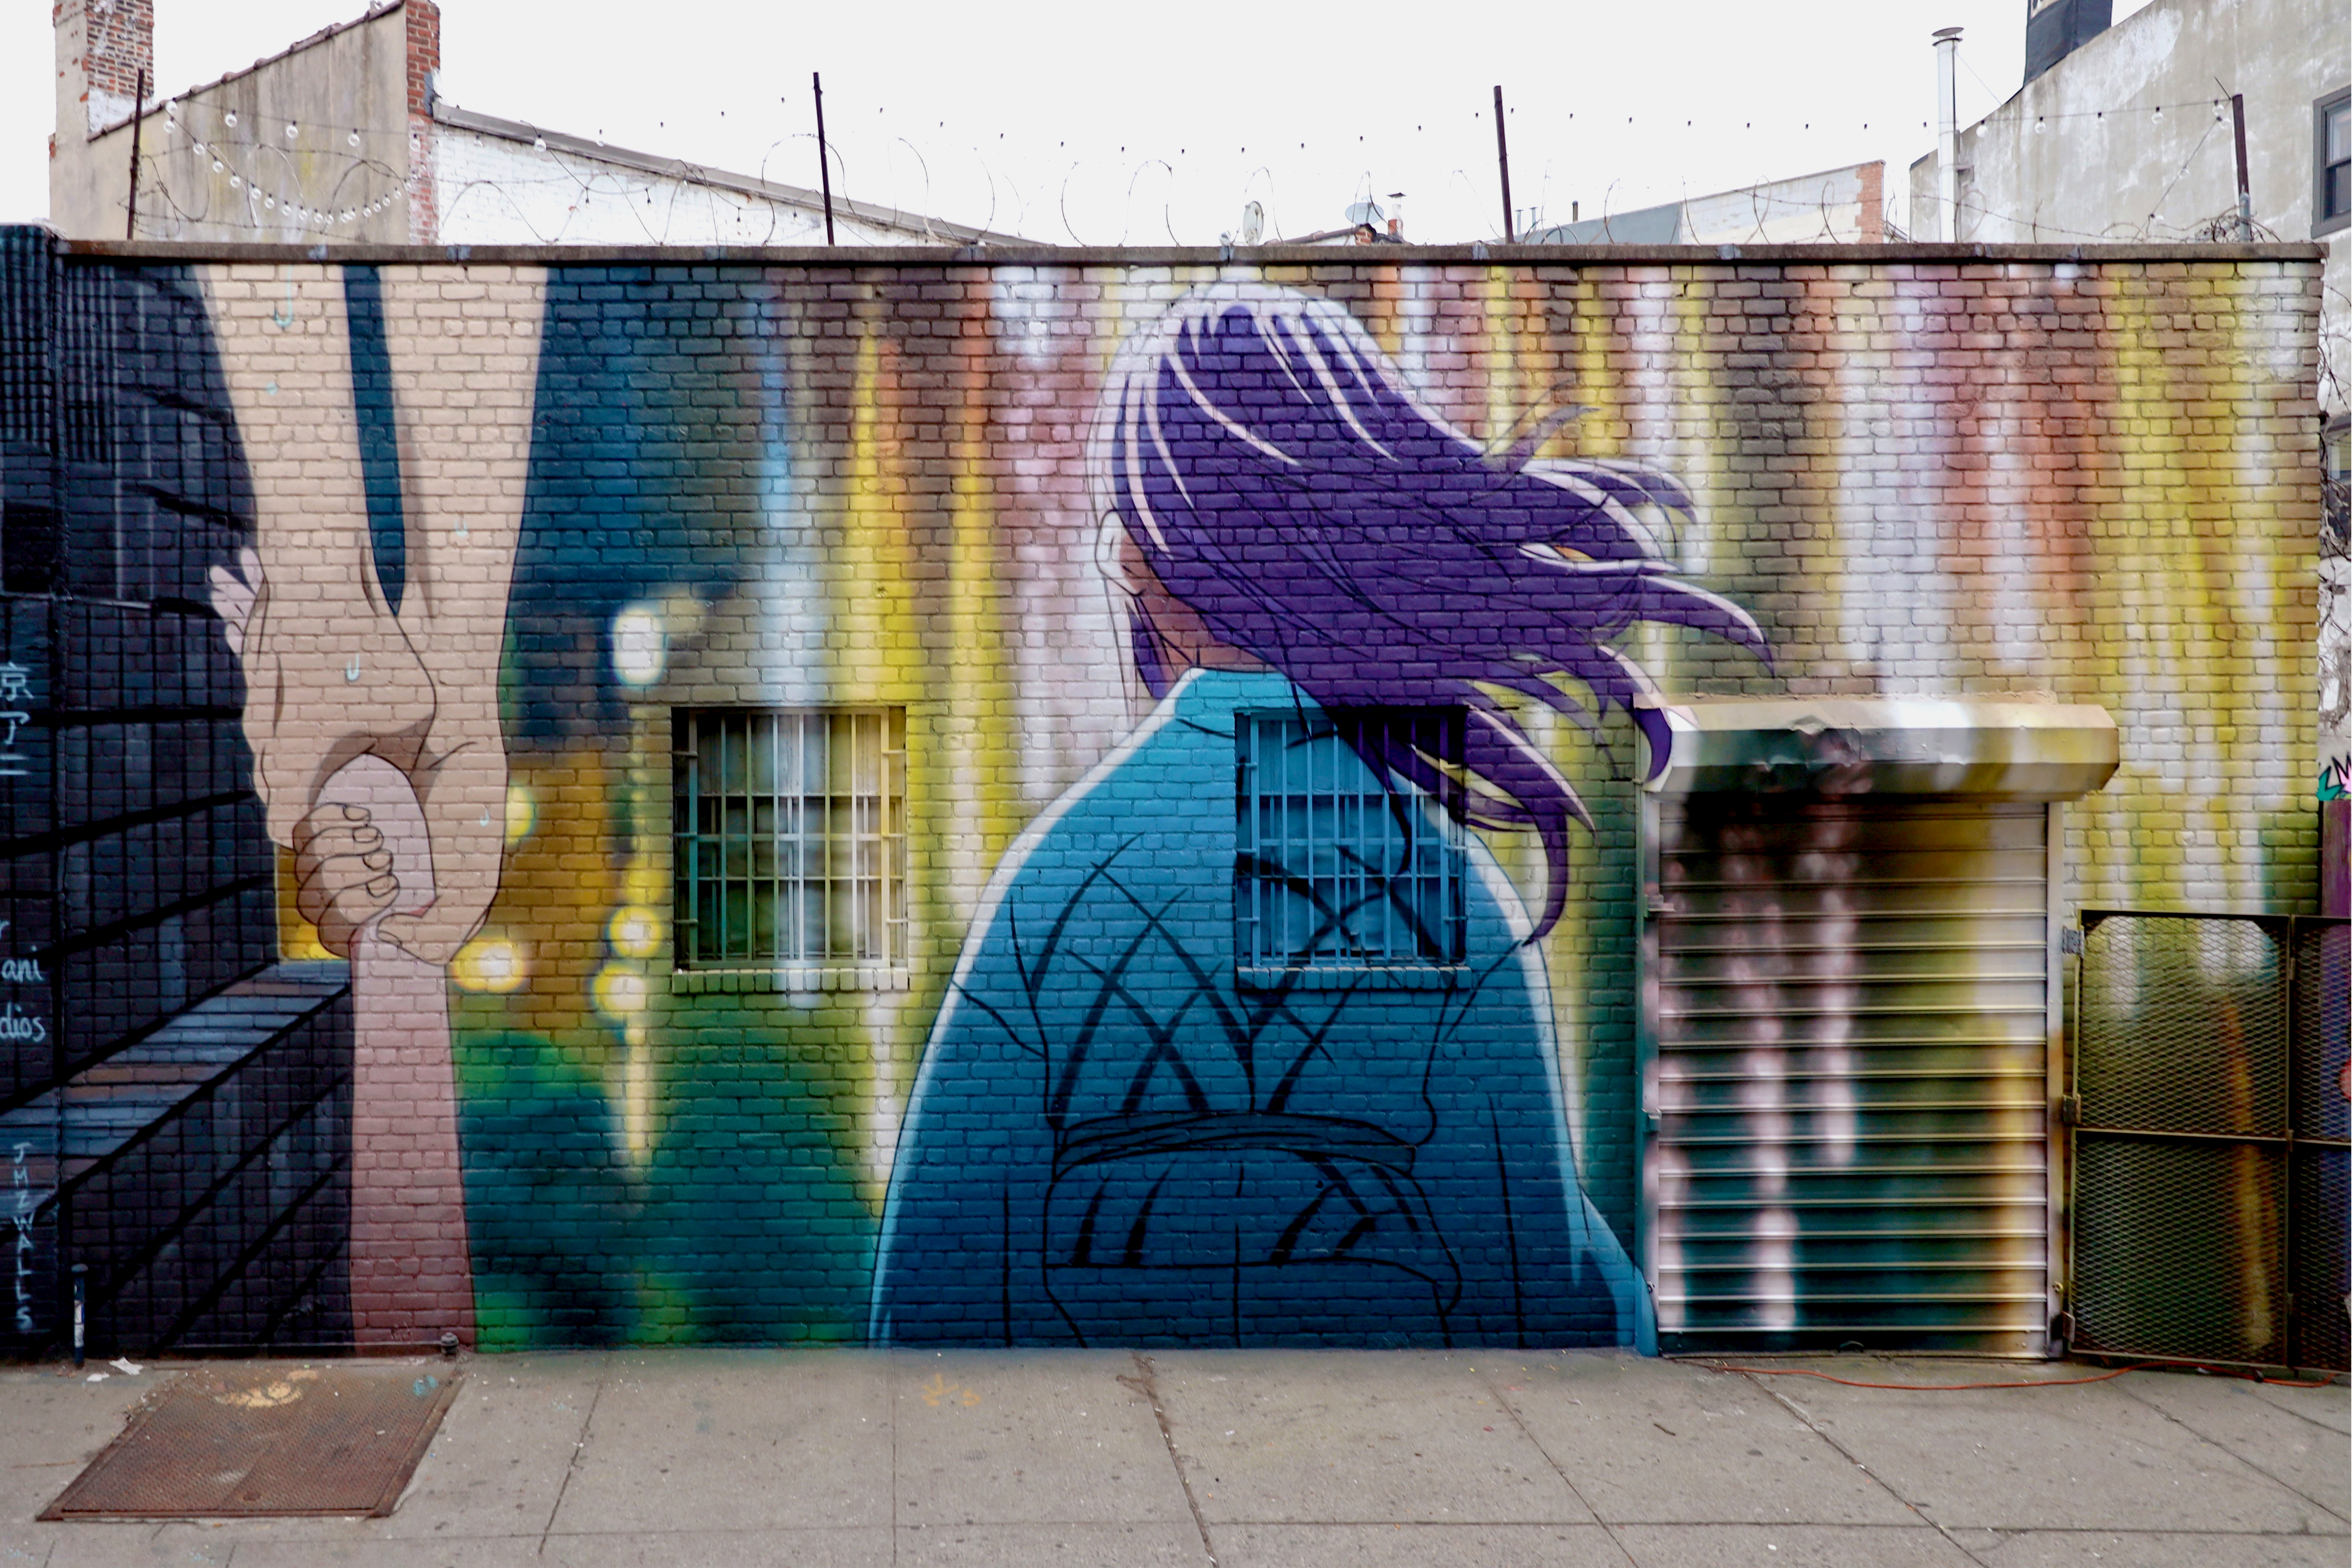 <b>Ganbare</b><br>Brooklyn NY<br>with JMZ Walls, Jan 2020<br>photo by @just_a_spectator<br>Scenes from 'A Silent Voice' from KyoAni Studios